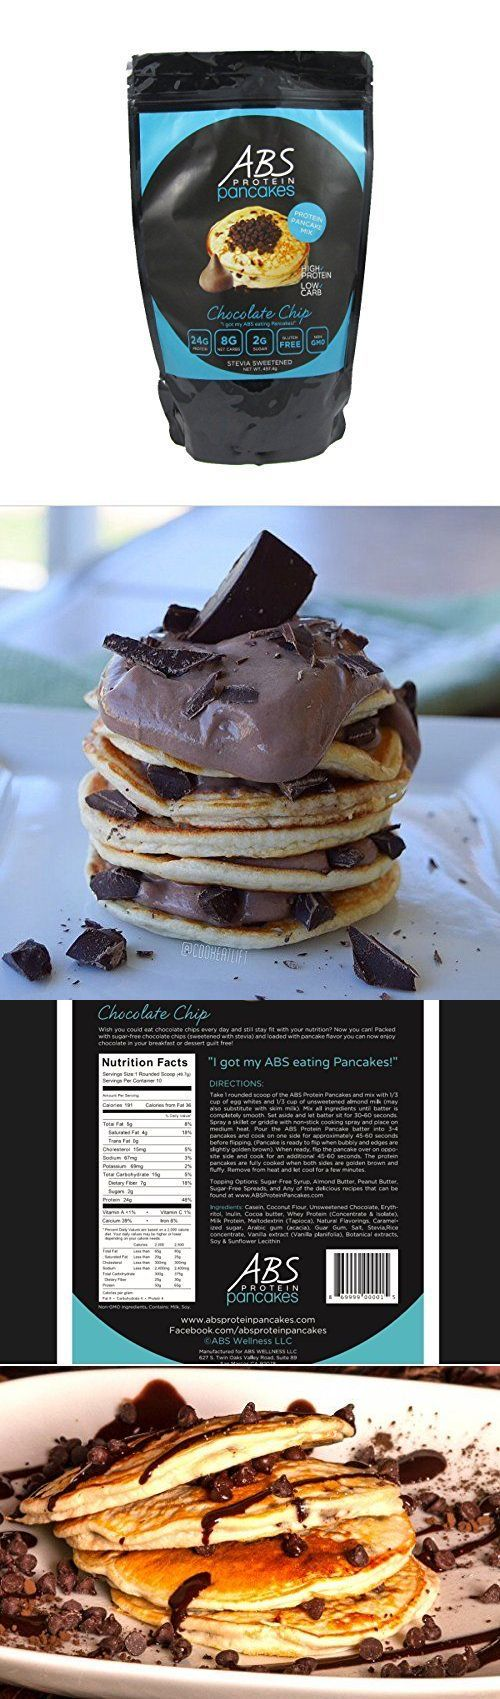 Baking Mixes 62695: Abs Protein Pancakes Chocolate Chip Pancake And Waffle Mix 1Lb, New -> BUY IT NOW ONLY: $45.34 on eBay!